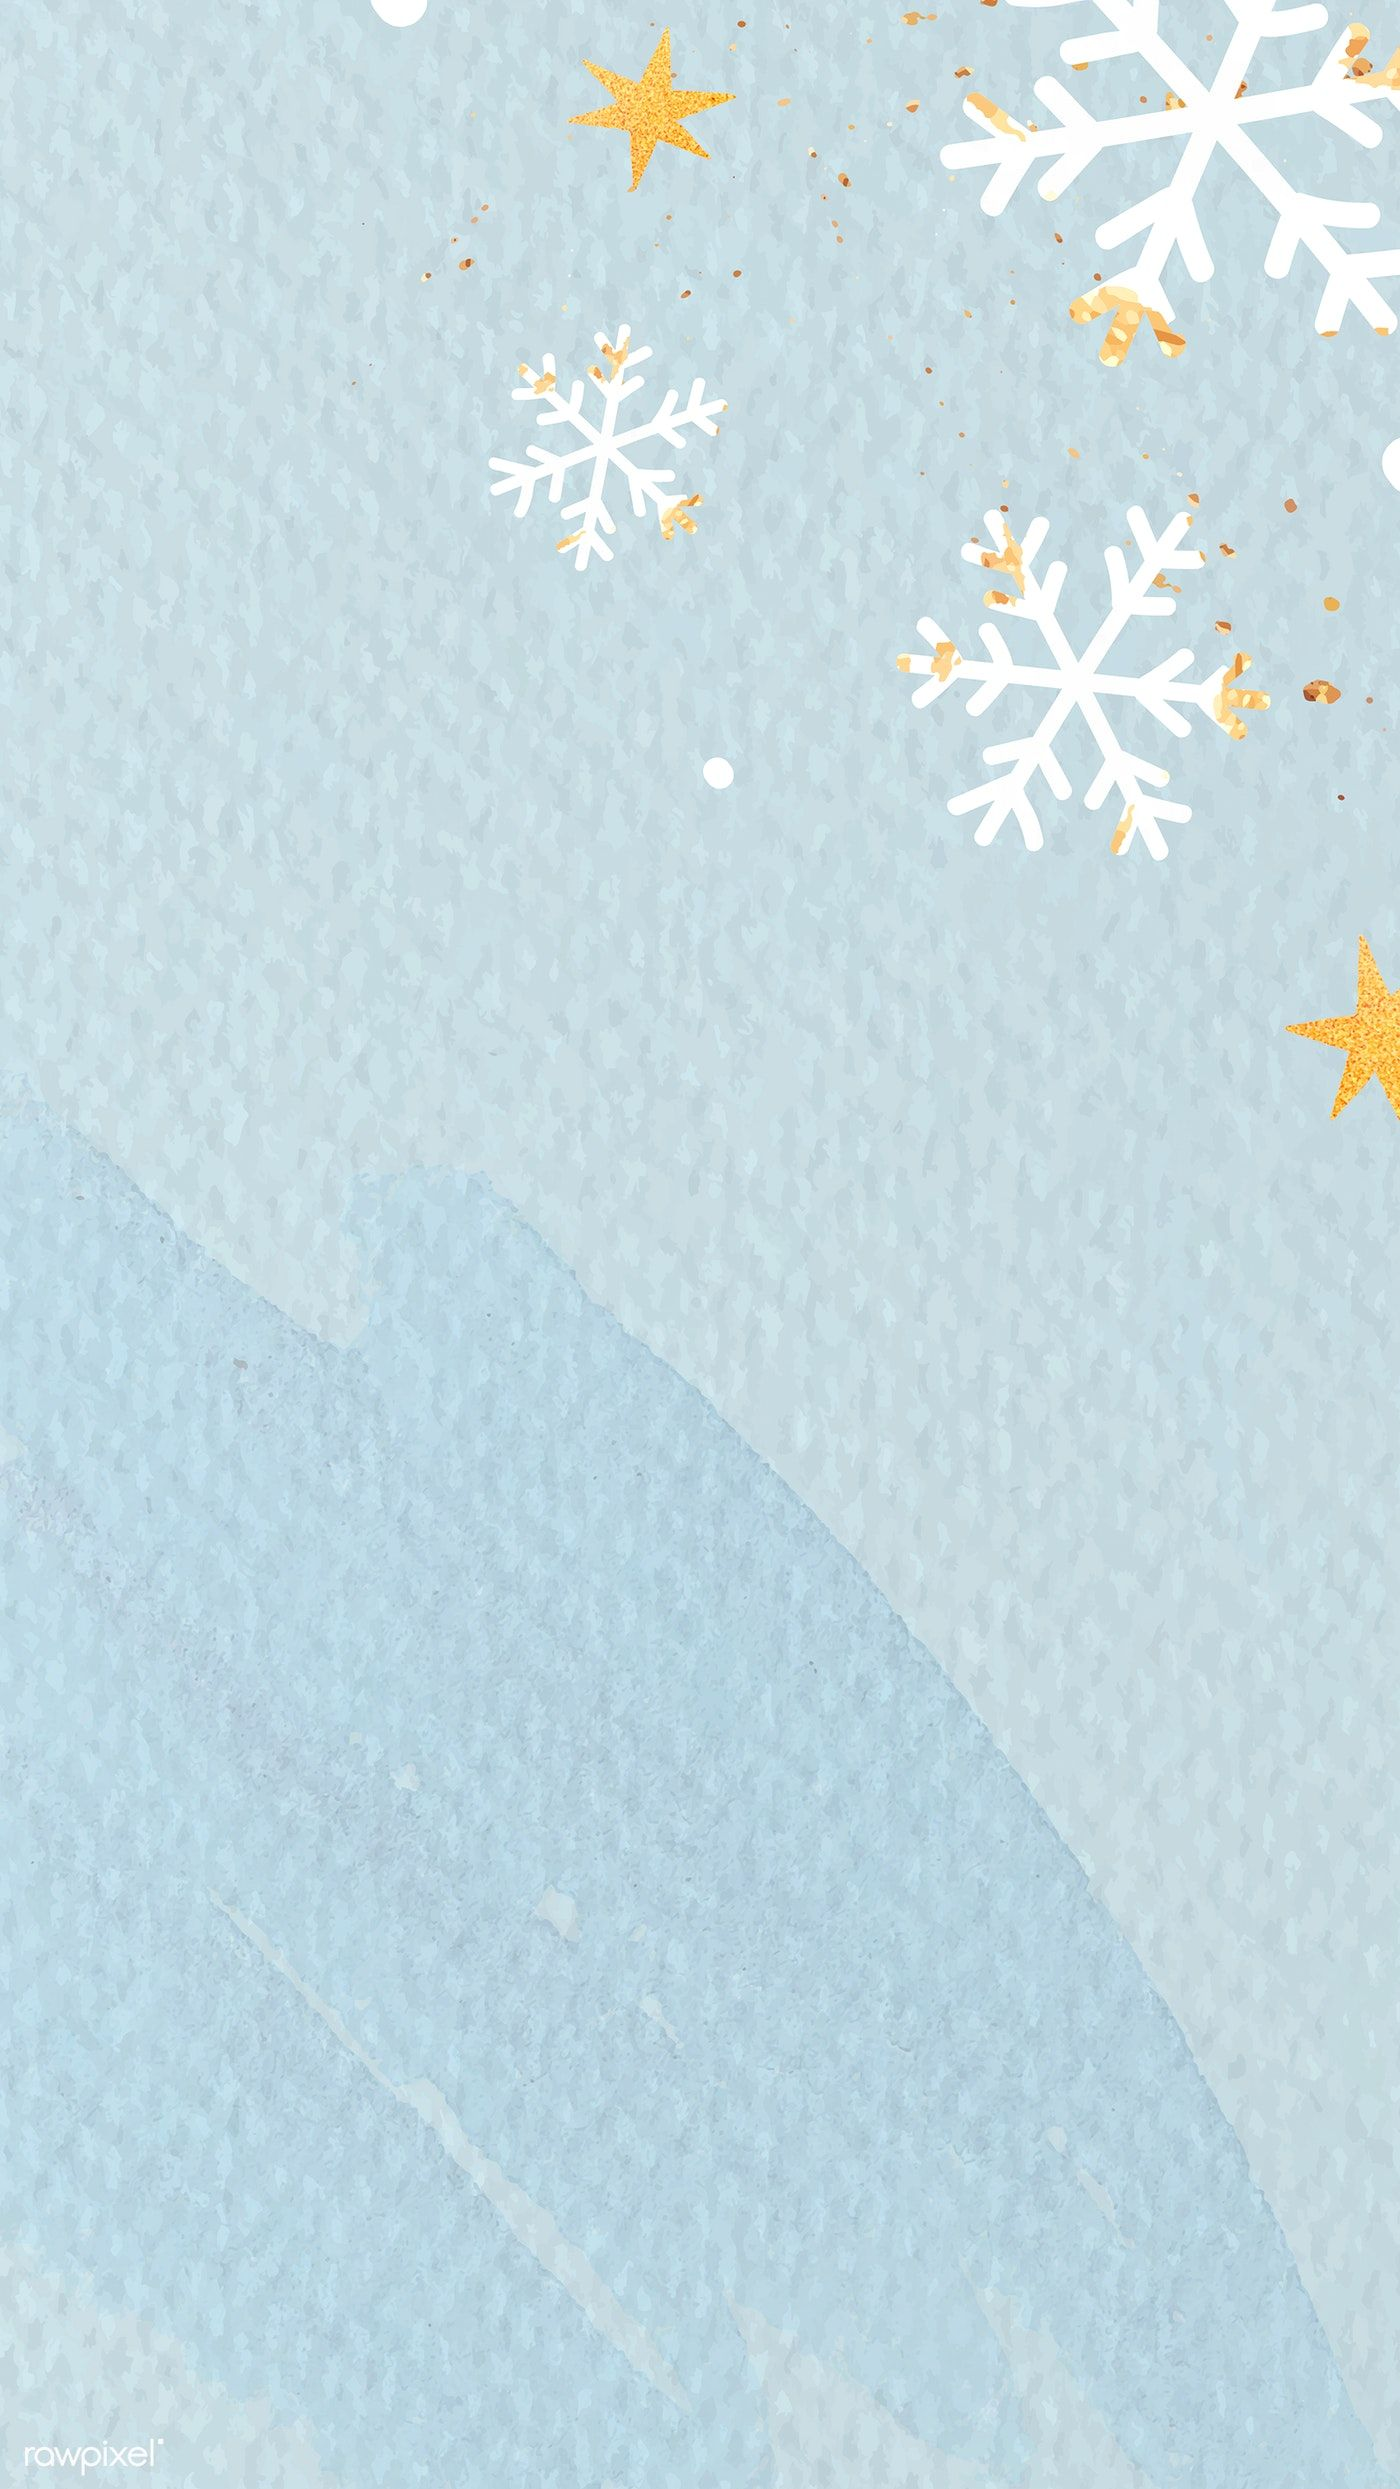 Download Premium Vector Of White Snowflakes On Light Blue Background Light Blue Background Blue Backgrounds Cute Pastel Wallpaper